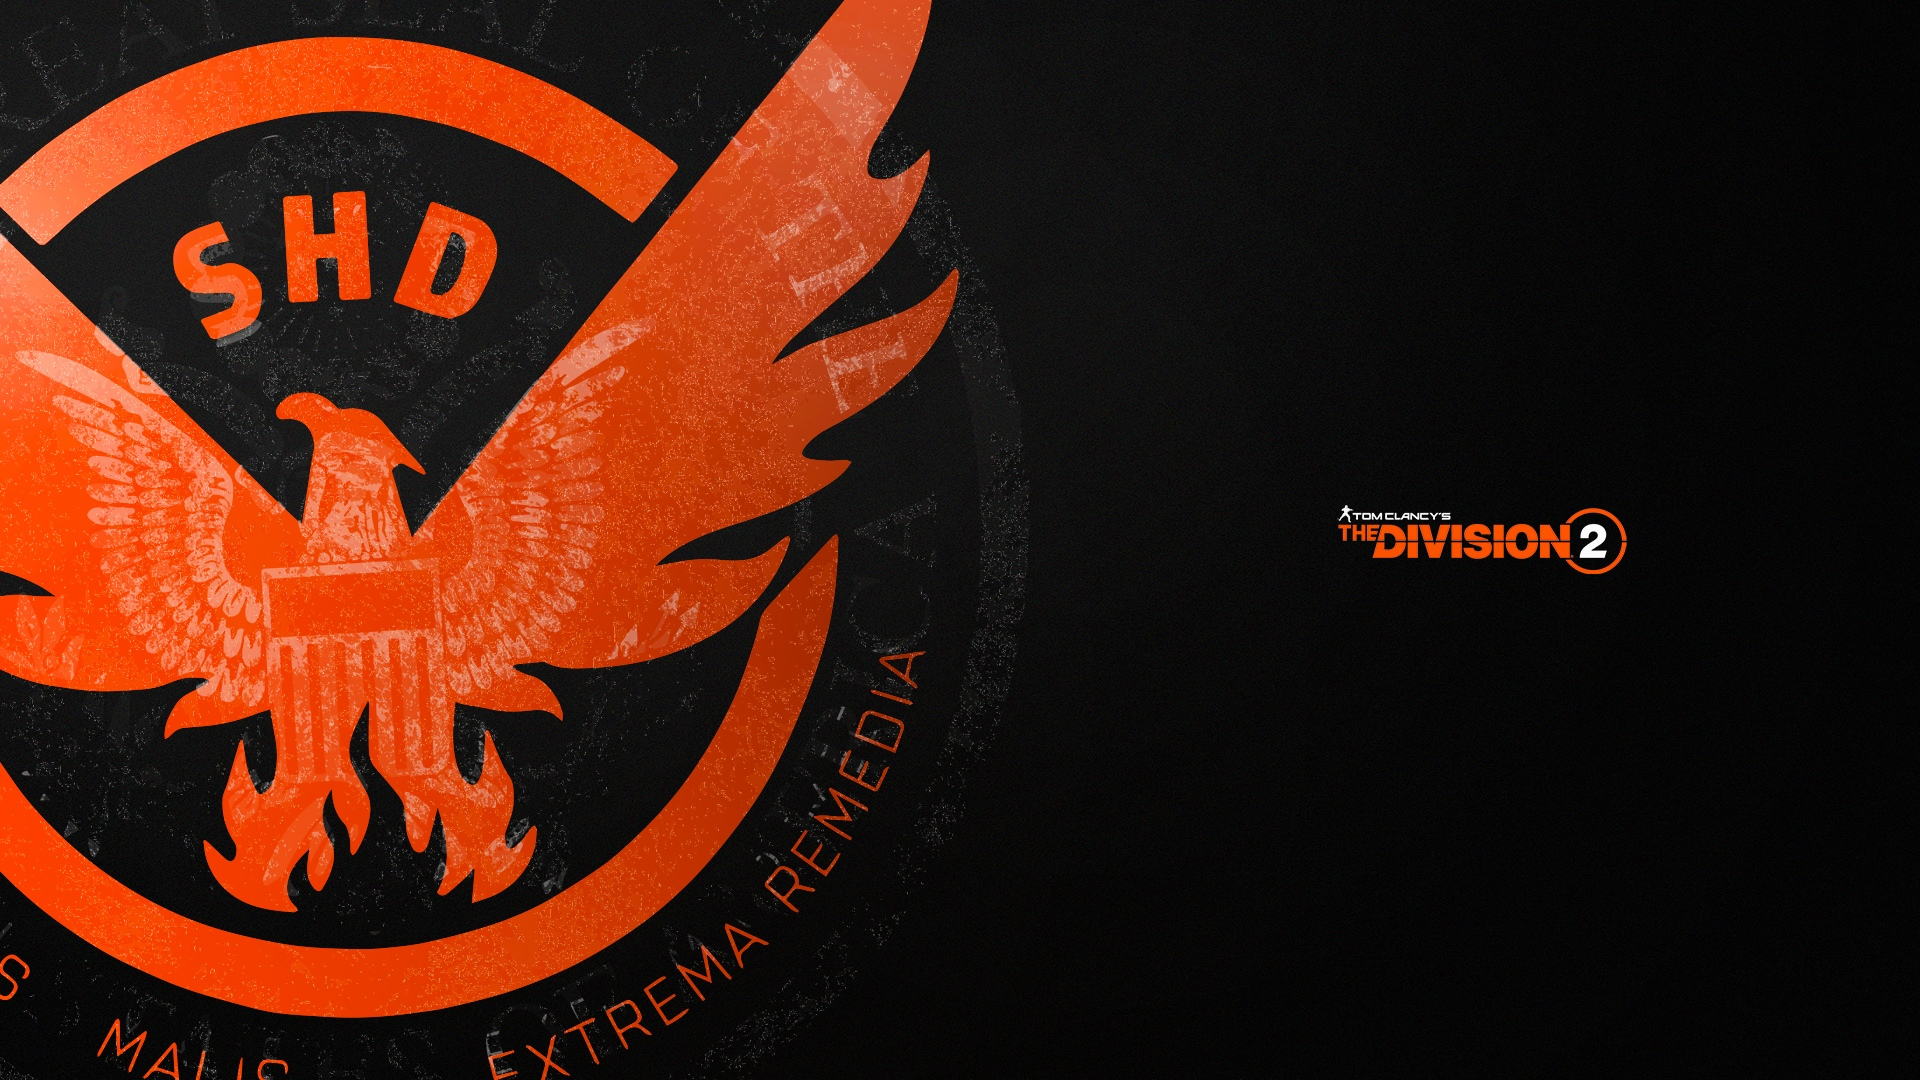 The Division 2 Wallpapers Desktop Mobile Division 2 Wallpapers Gameguidehq